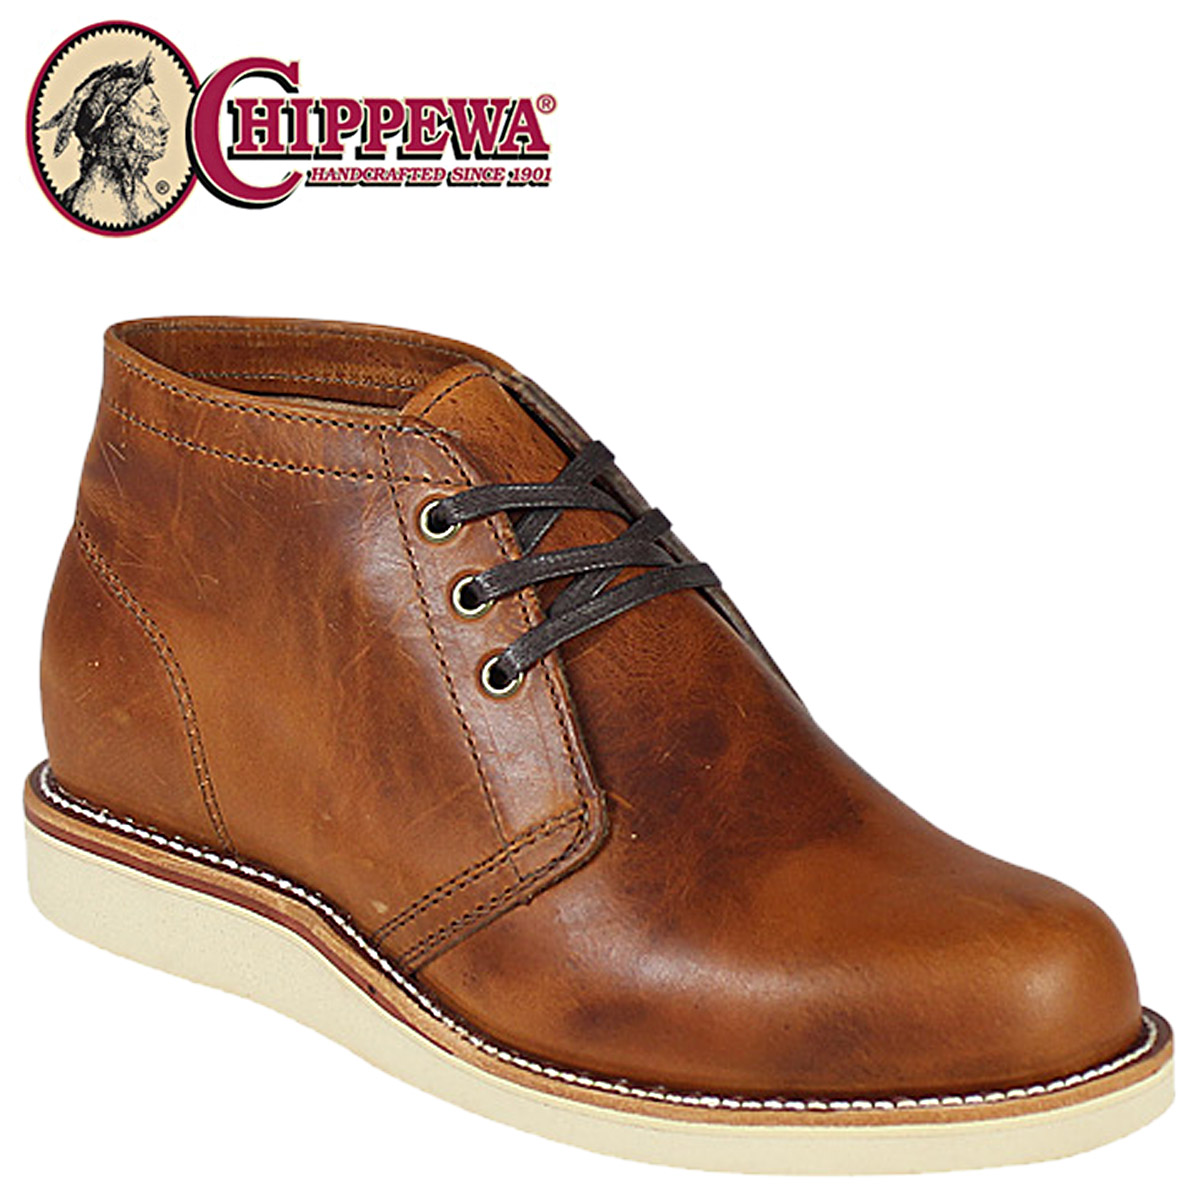 SneaK Online Shop | Rakuten Global Market: Chippewa CHIPPEWA 5 ...